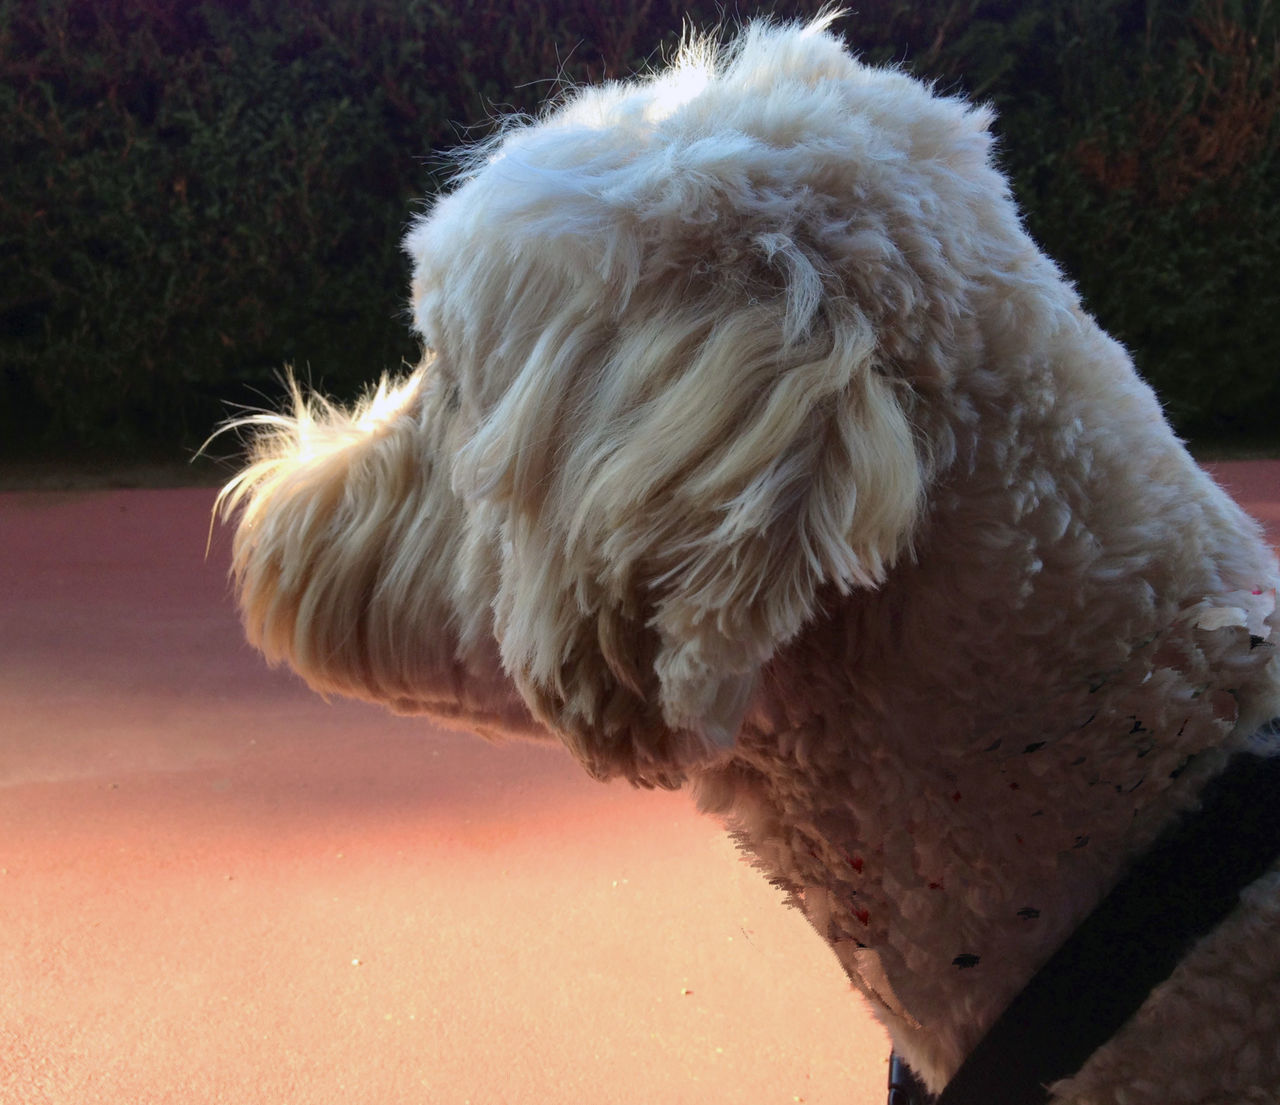 Pastel Power Outdoors Love ♥ Golden Doodle Keeping Watch Dog Dog❤ Dogs Of EyeEm Goldendoodle Golden Doodle Pose